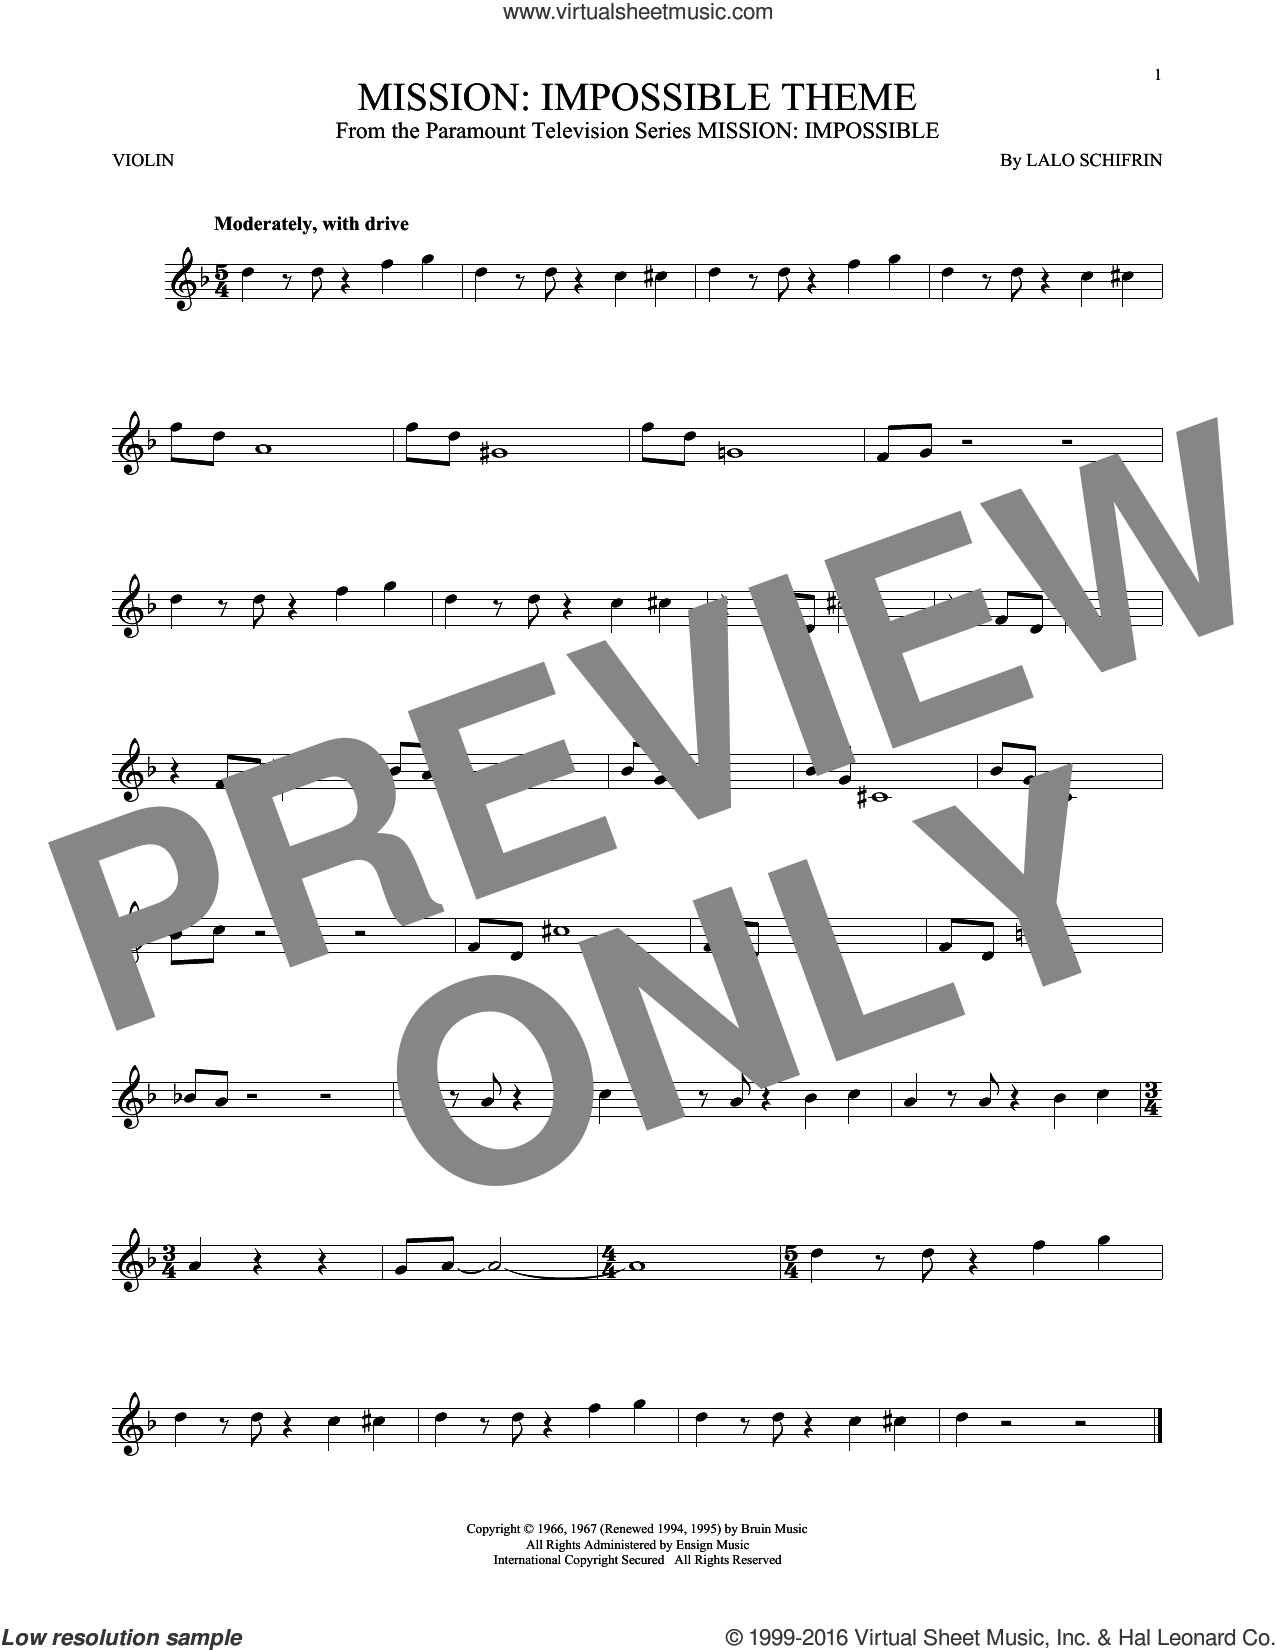 Mission: Impossible Theme sheet music for violin solo by Lalo Schifrin